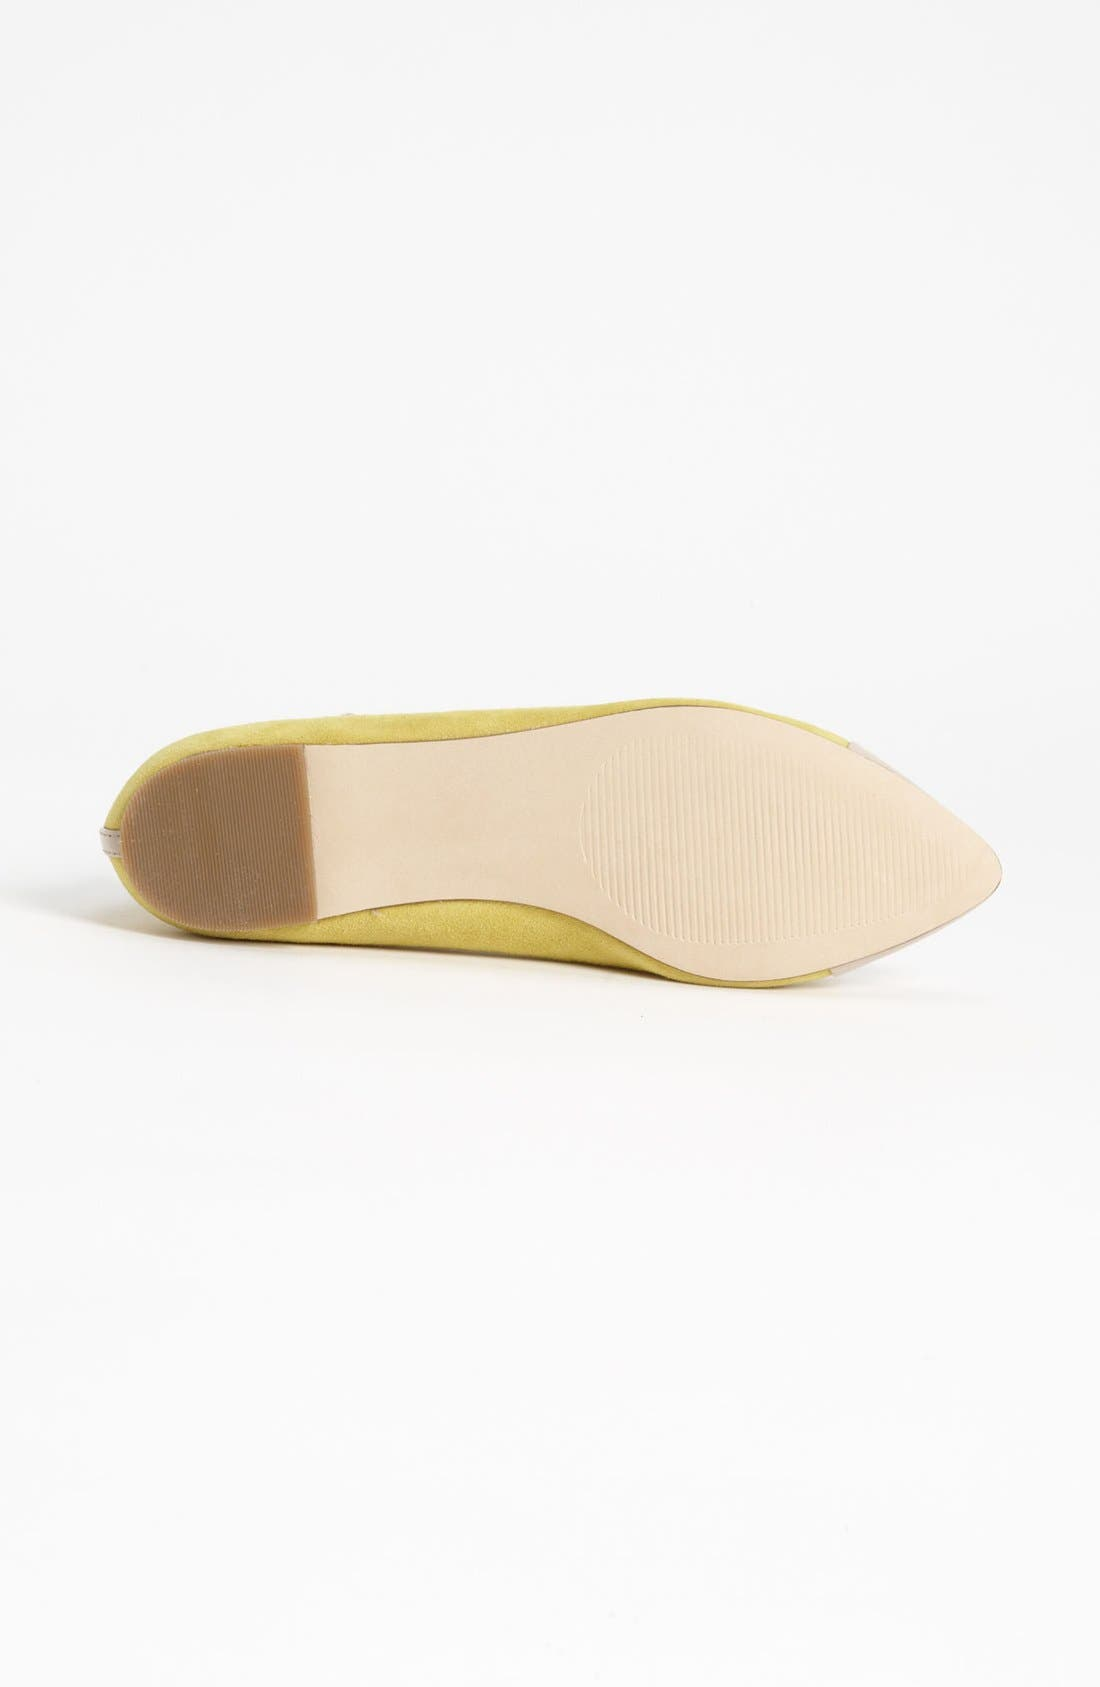 ,                             Julianne Hough for Sole Society 'Addy' Flat,                             Alternate thumbnail 34, color,                             331